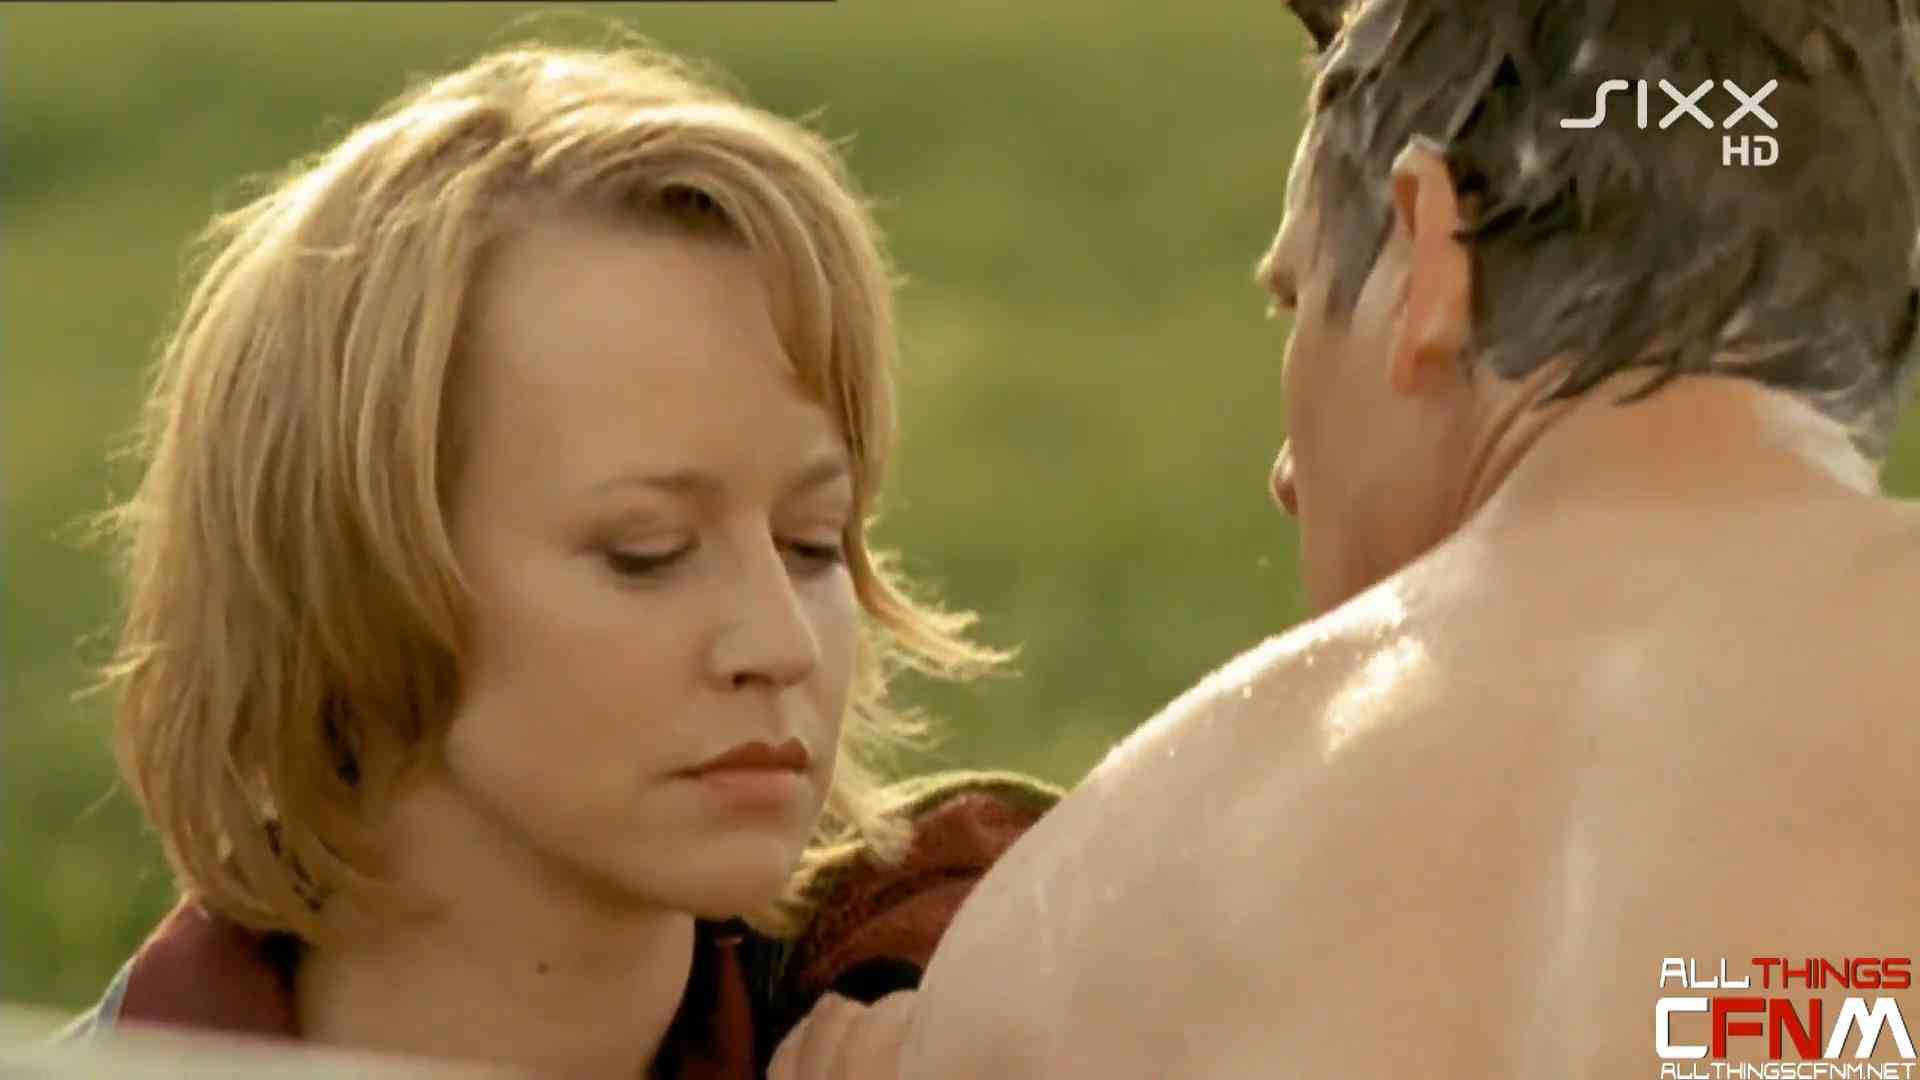 twelve scenes of sexually charged and erotic cfnm from mainstream